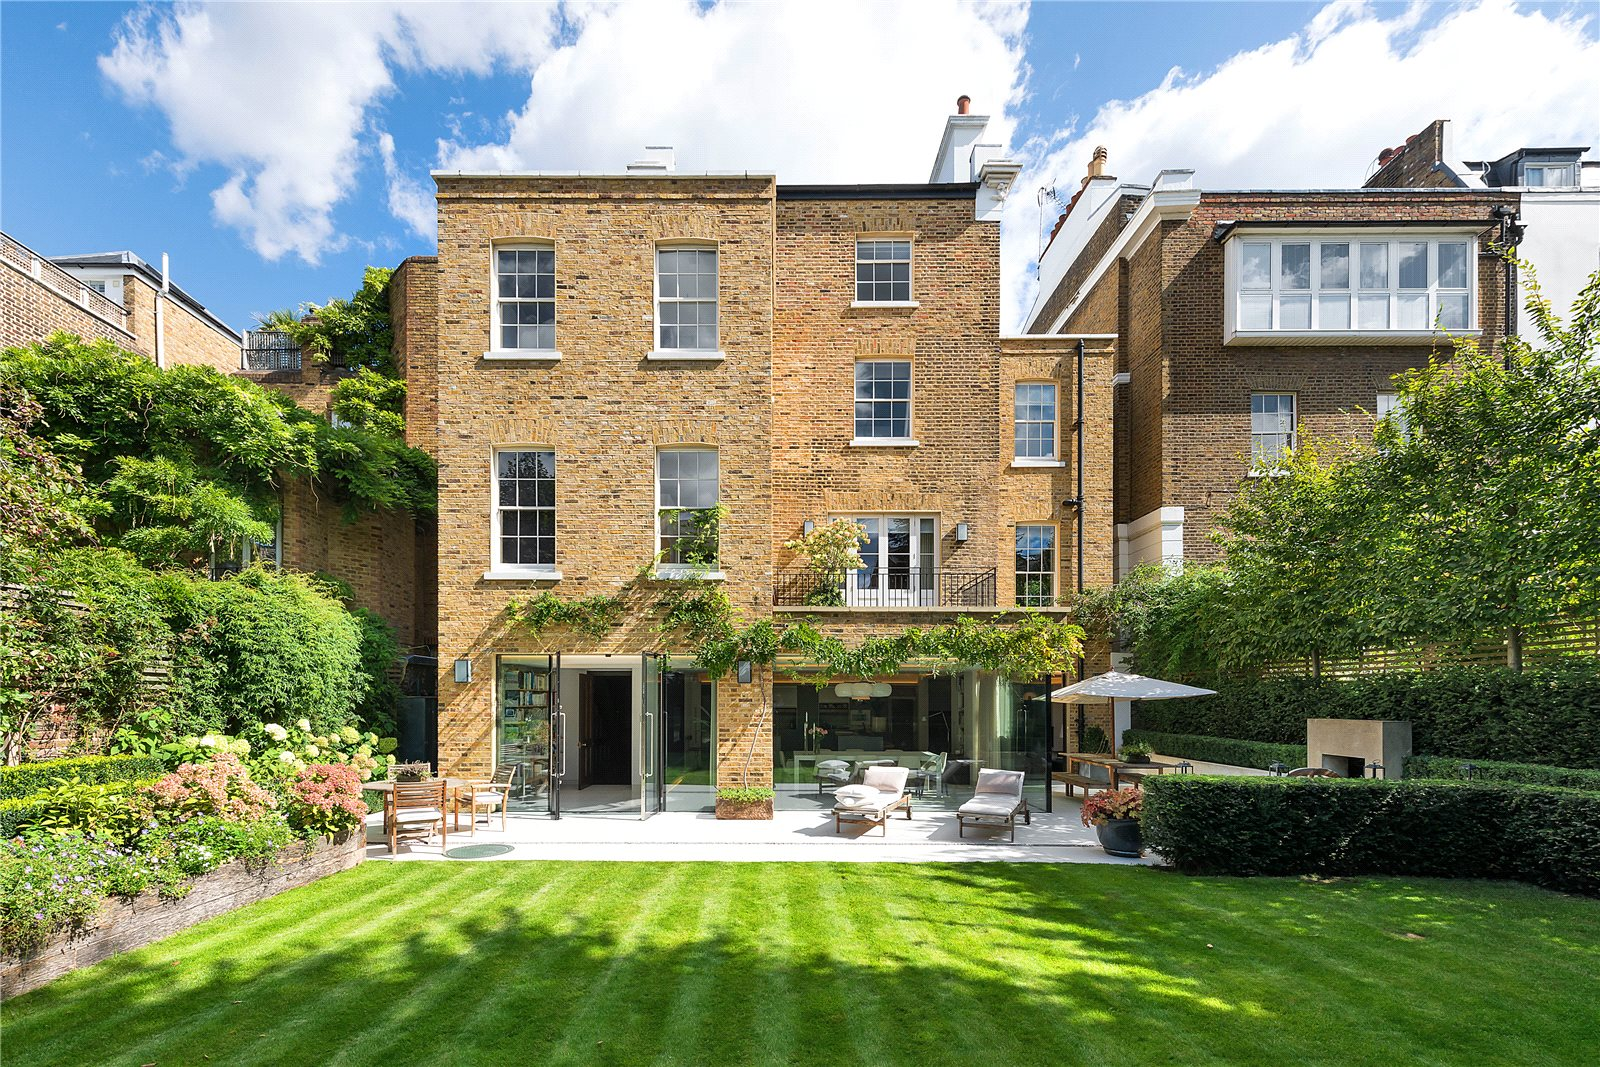 Single Family Home For Sale At Clarendon Road, Holland Park, W11 Holland  Park,